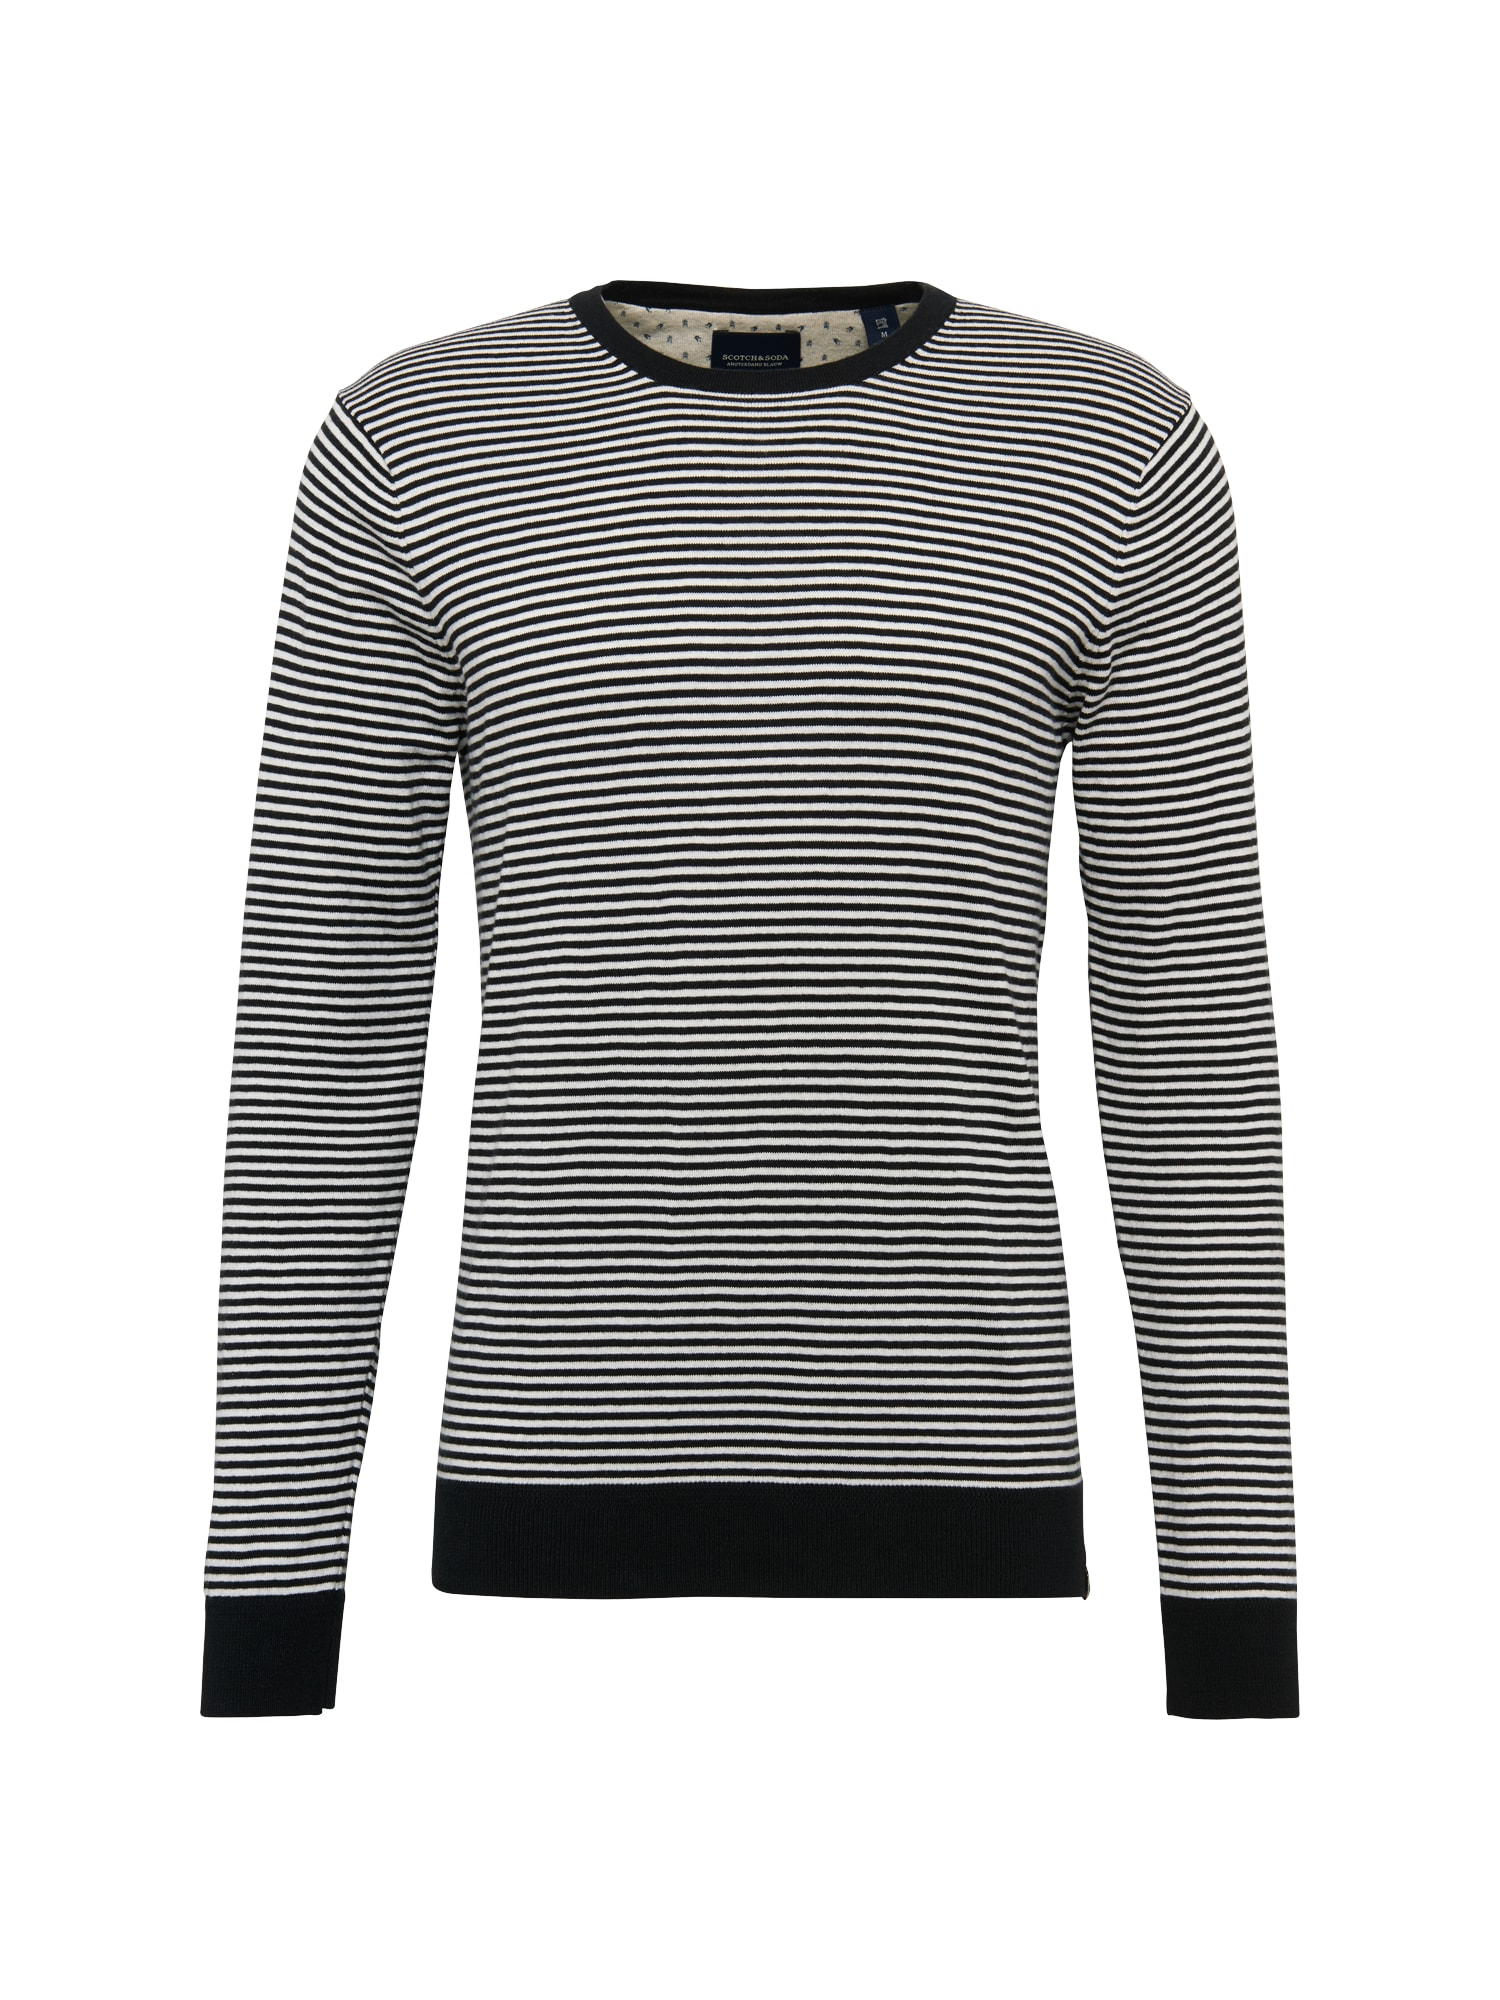 SCOTCH  and  SODA Heren Trui Ams Blauw crew neck knit in cotton cashmere quality'